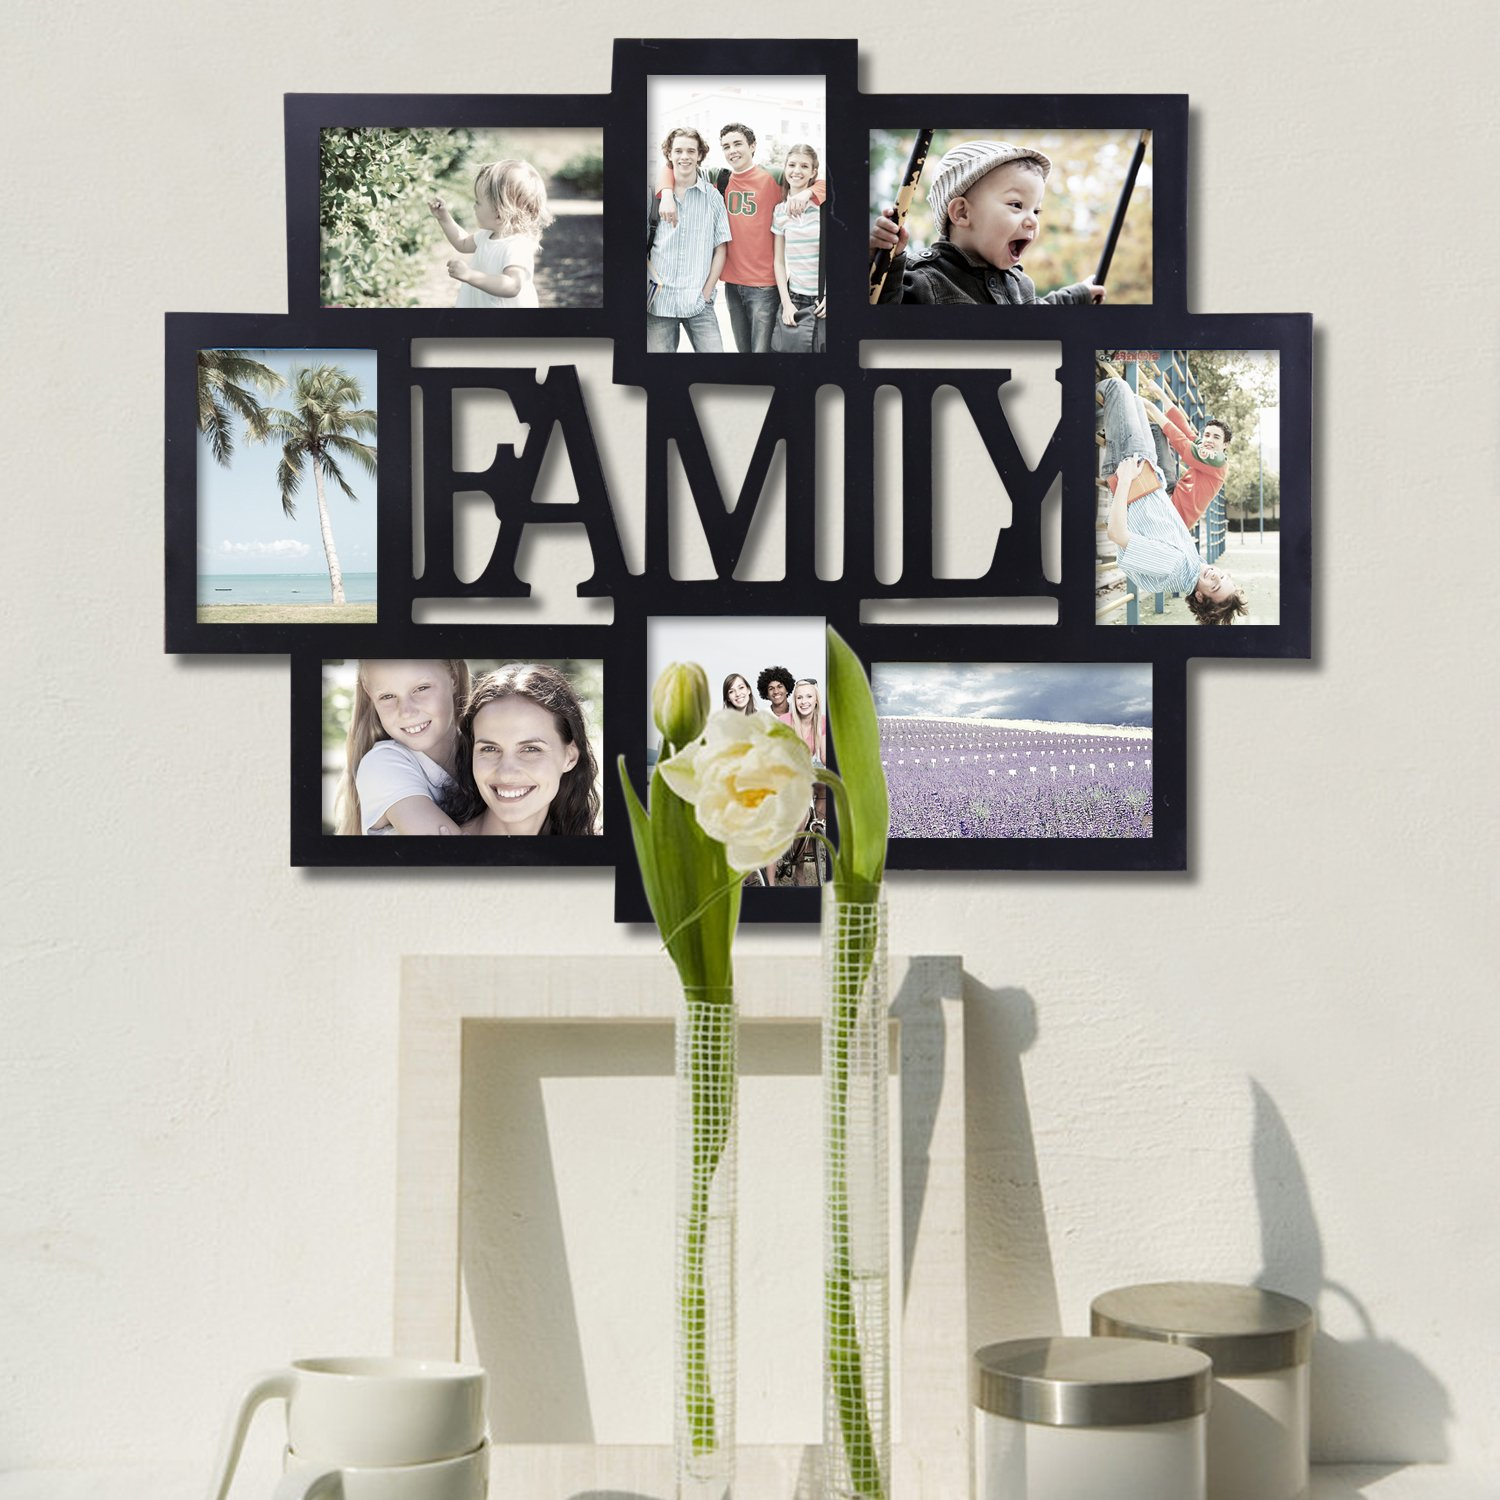 1e0c5992cb7 Adeco PF0432 Black Wood Family Wall Hanging Collage Photo Frame